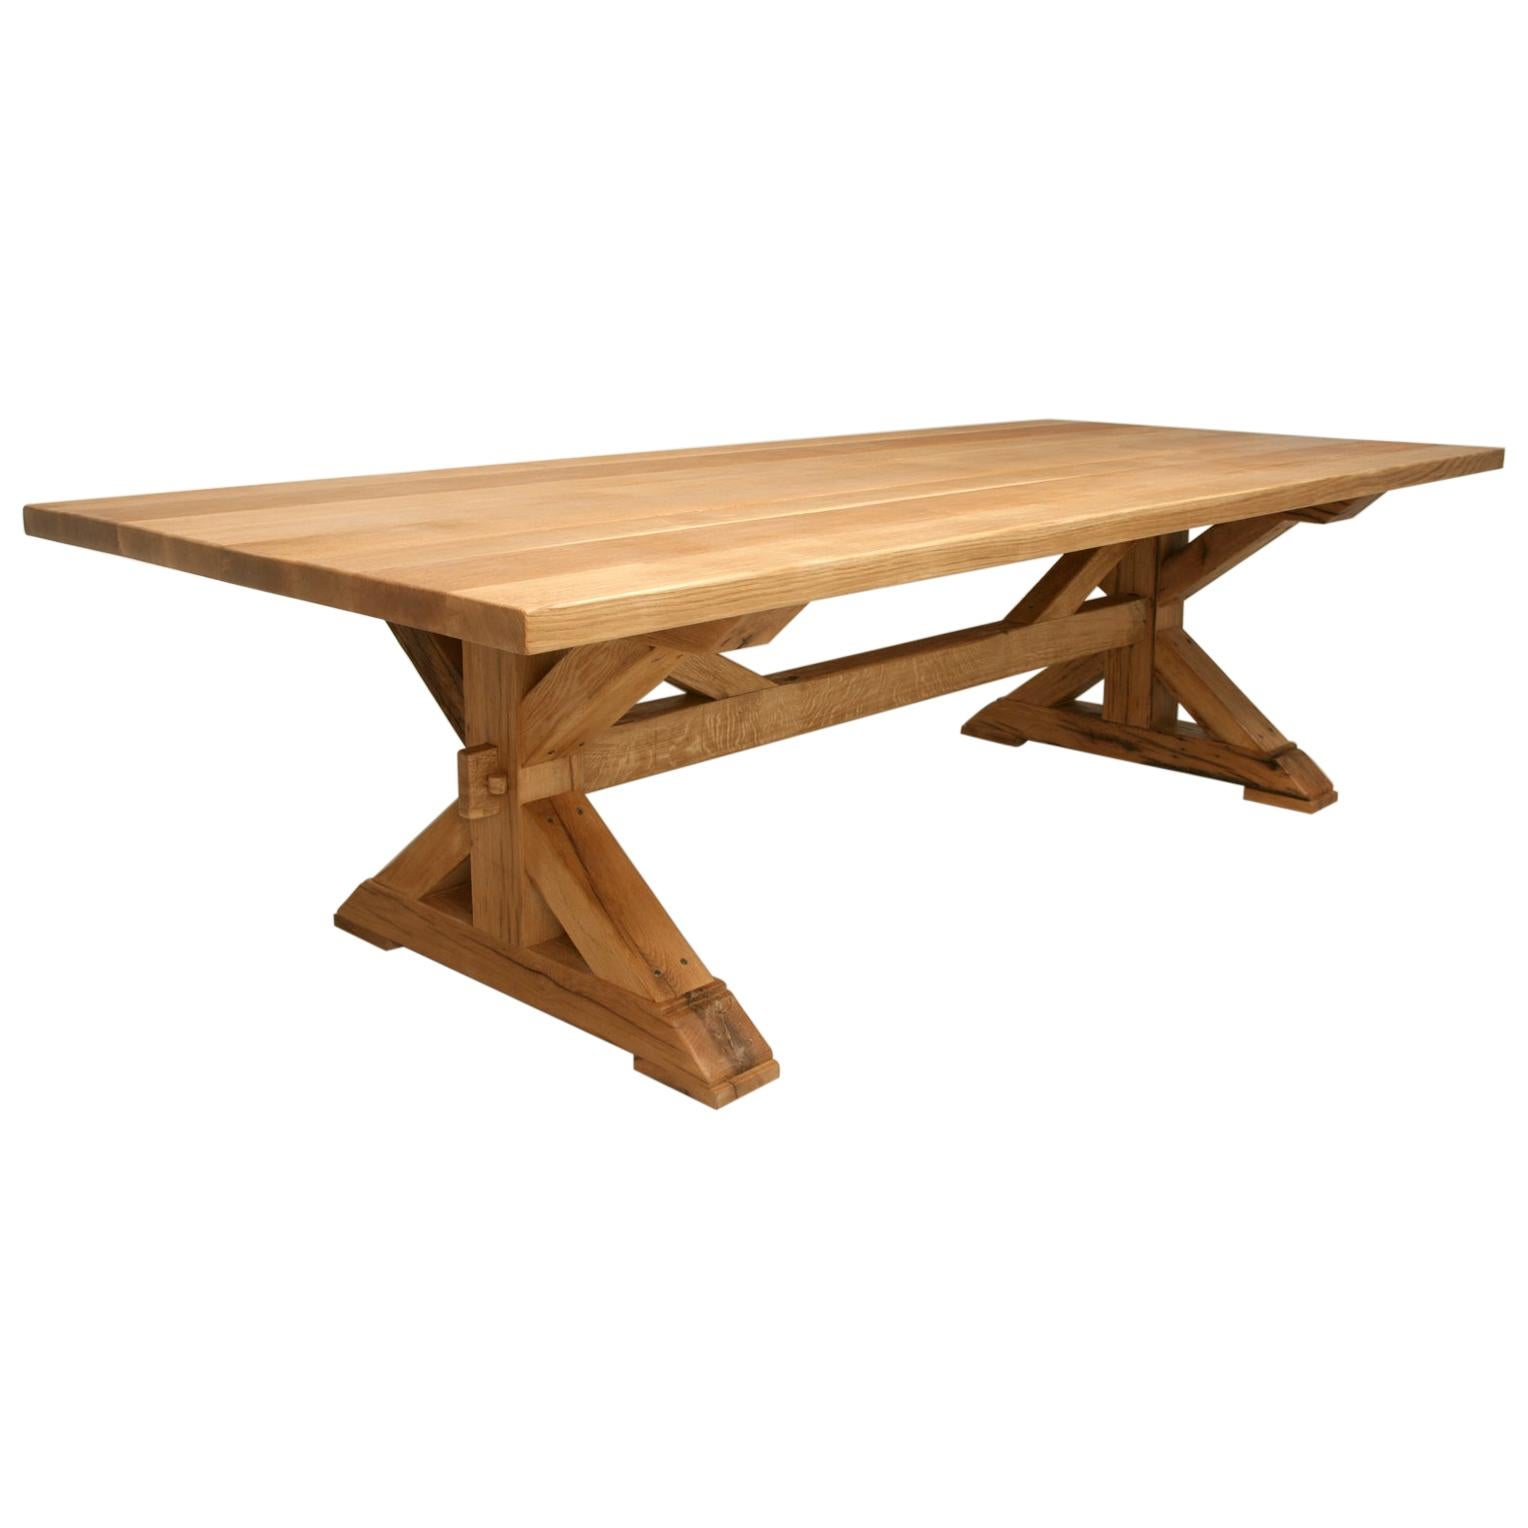 Custom Made French Style Farm Table from Reclaimed White Oak in Any Dimension